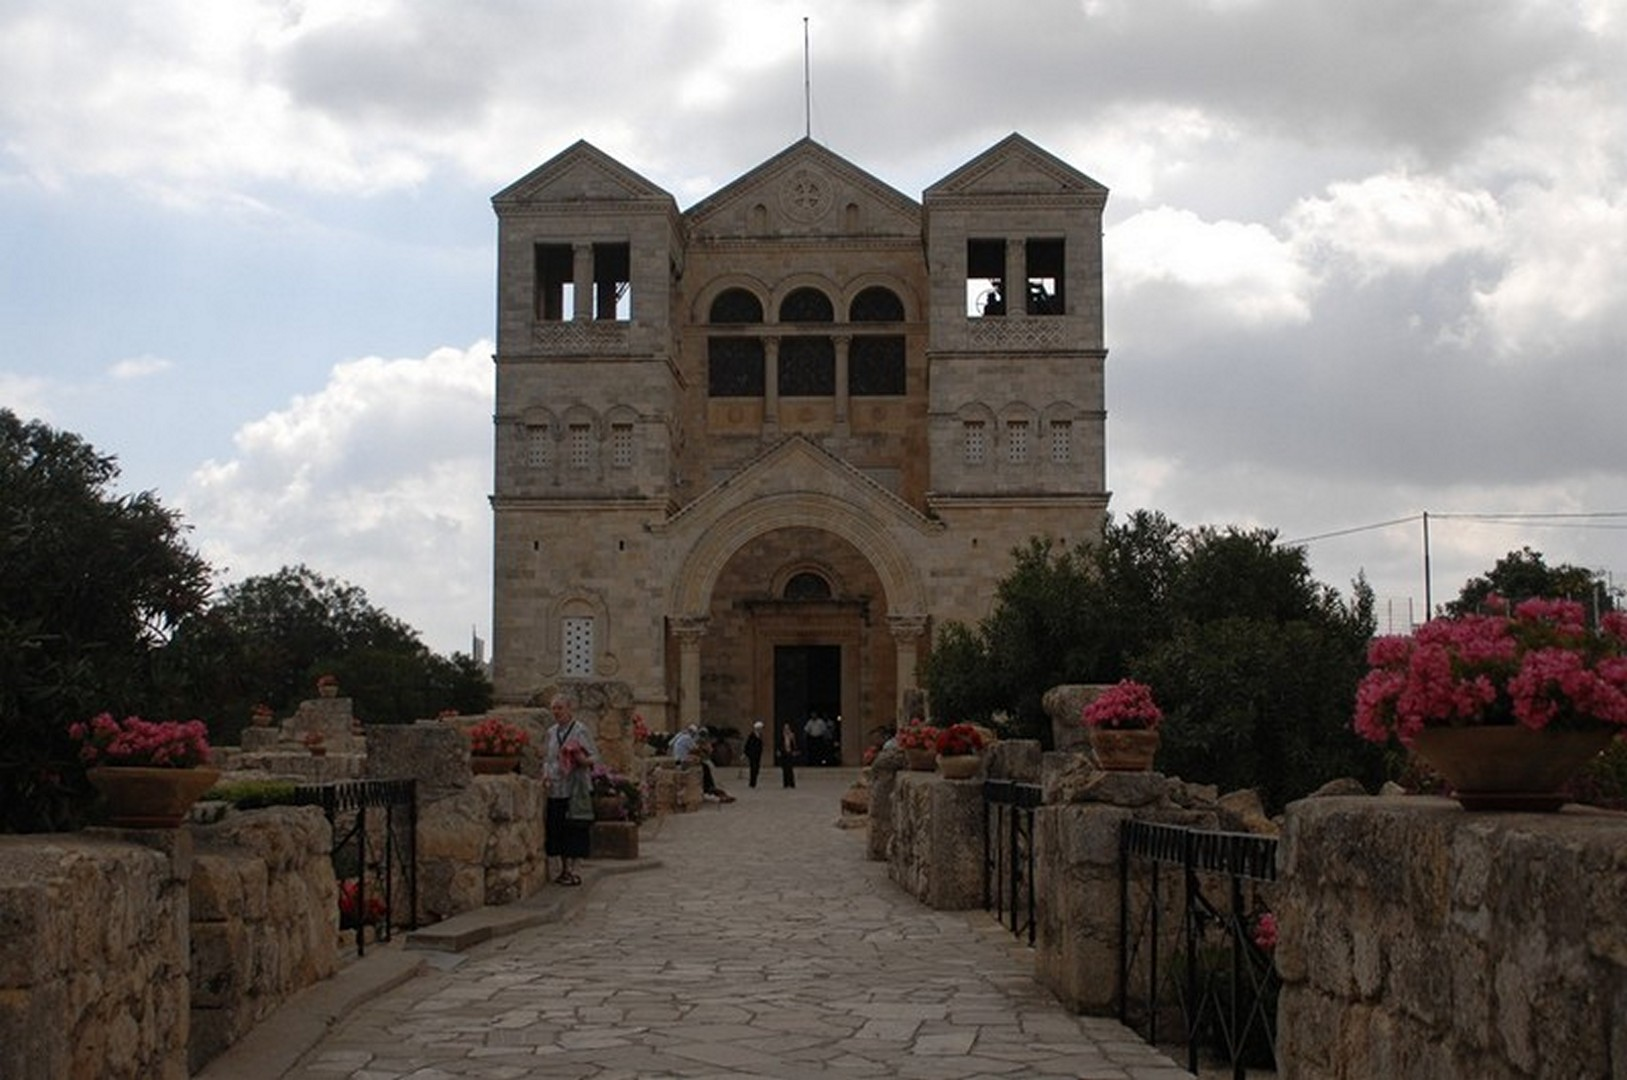 Anointing Oils to Jerusalem